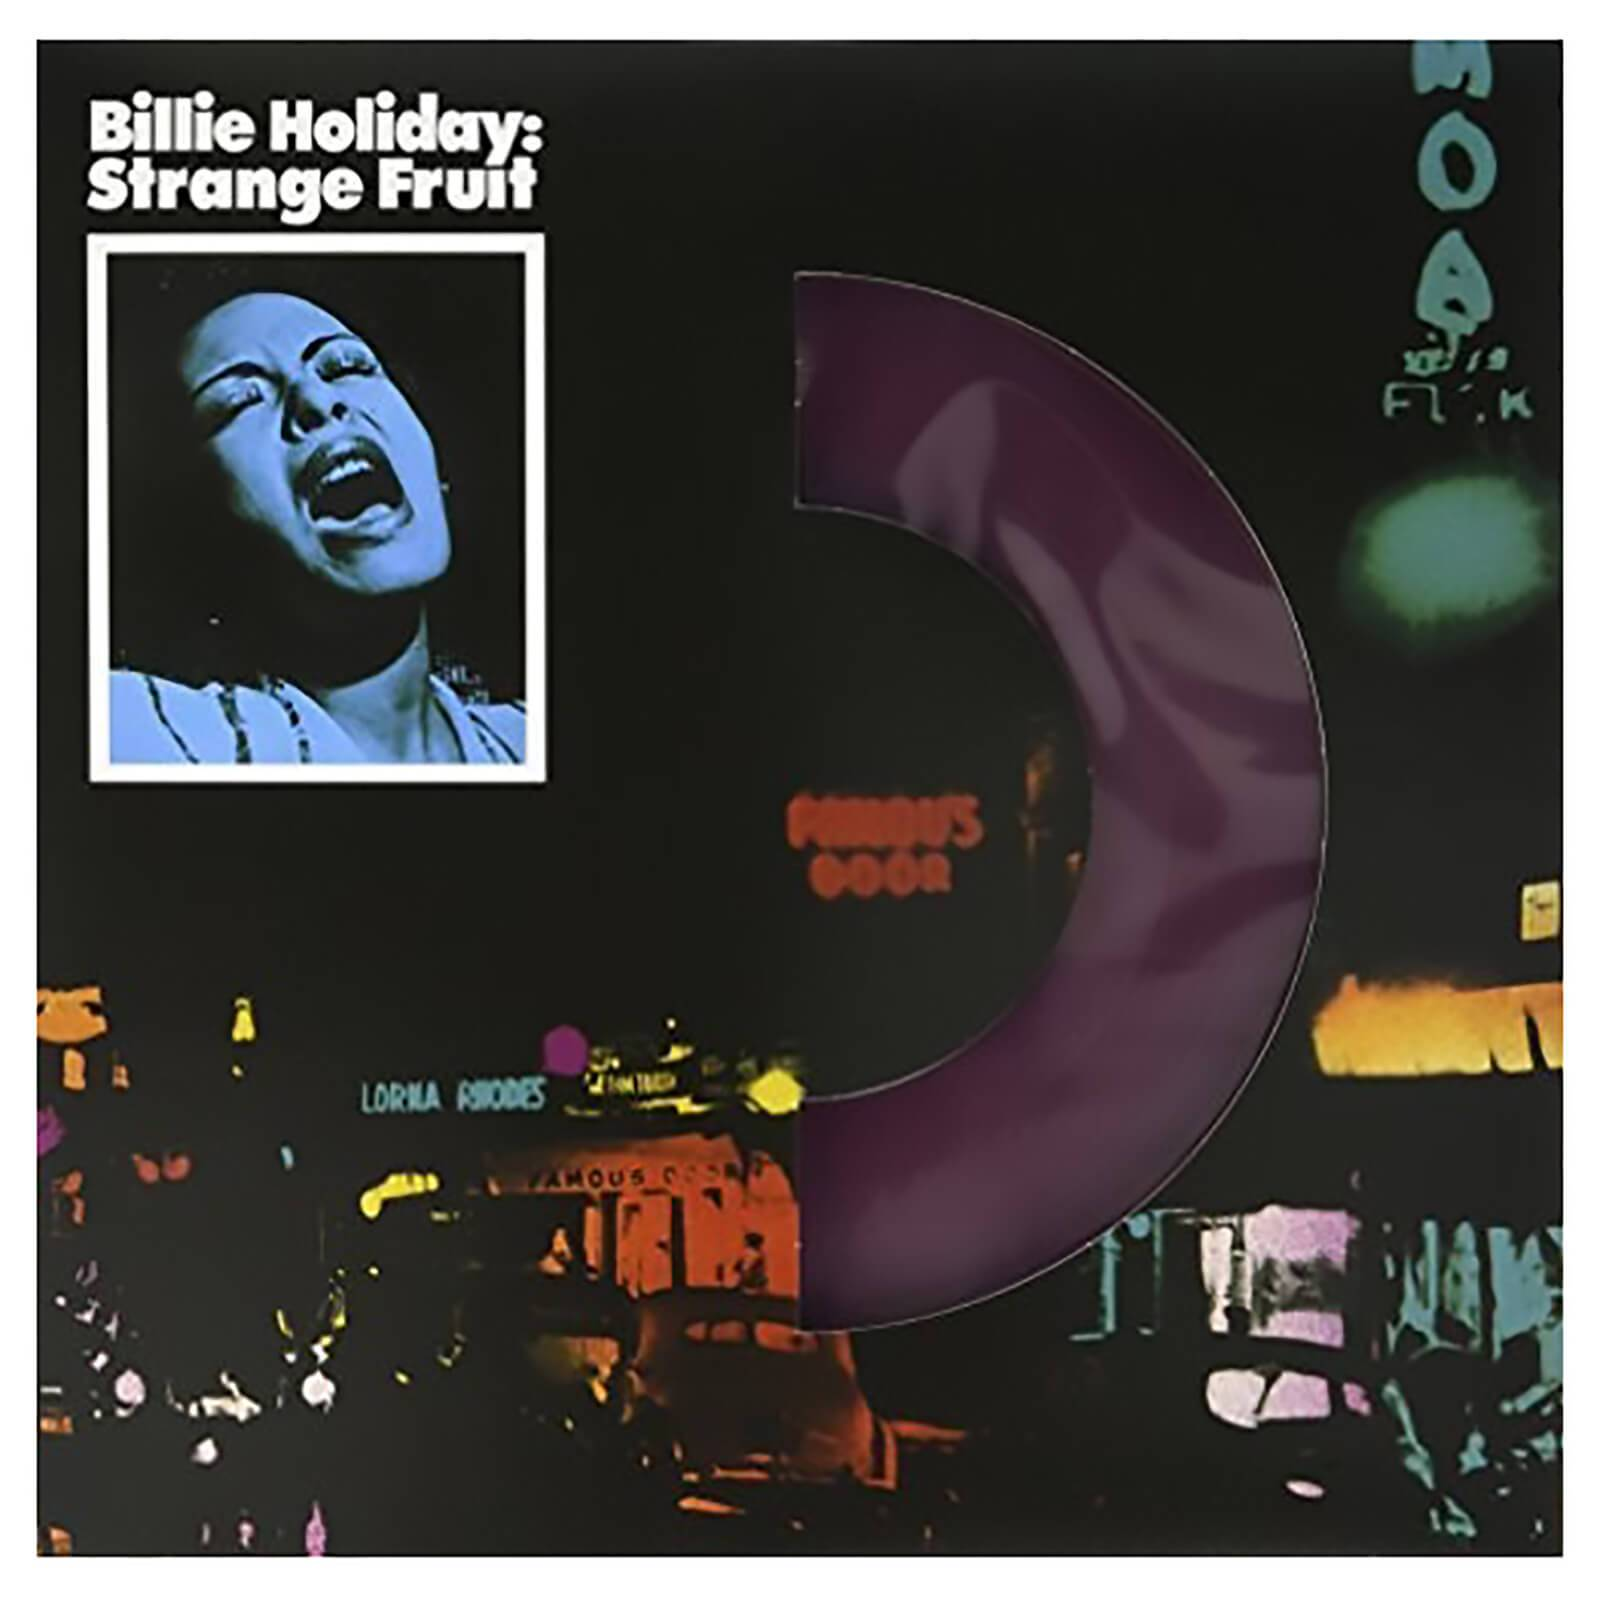 Billie Holiday - Strange Fruit [LP] (180 Gram, hits compilation, gatefold) (Vinyl) - Urban Vinyl | Records, Headphones, and more.